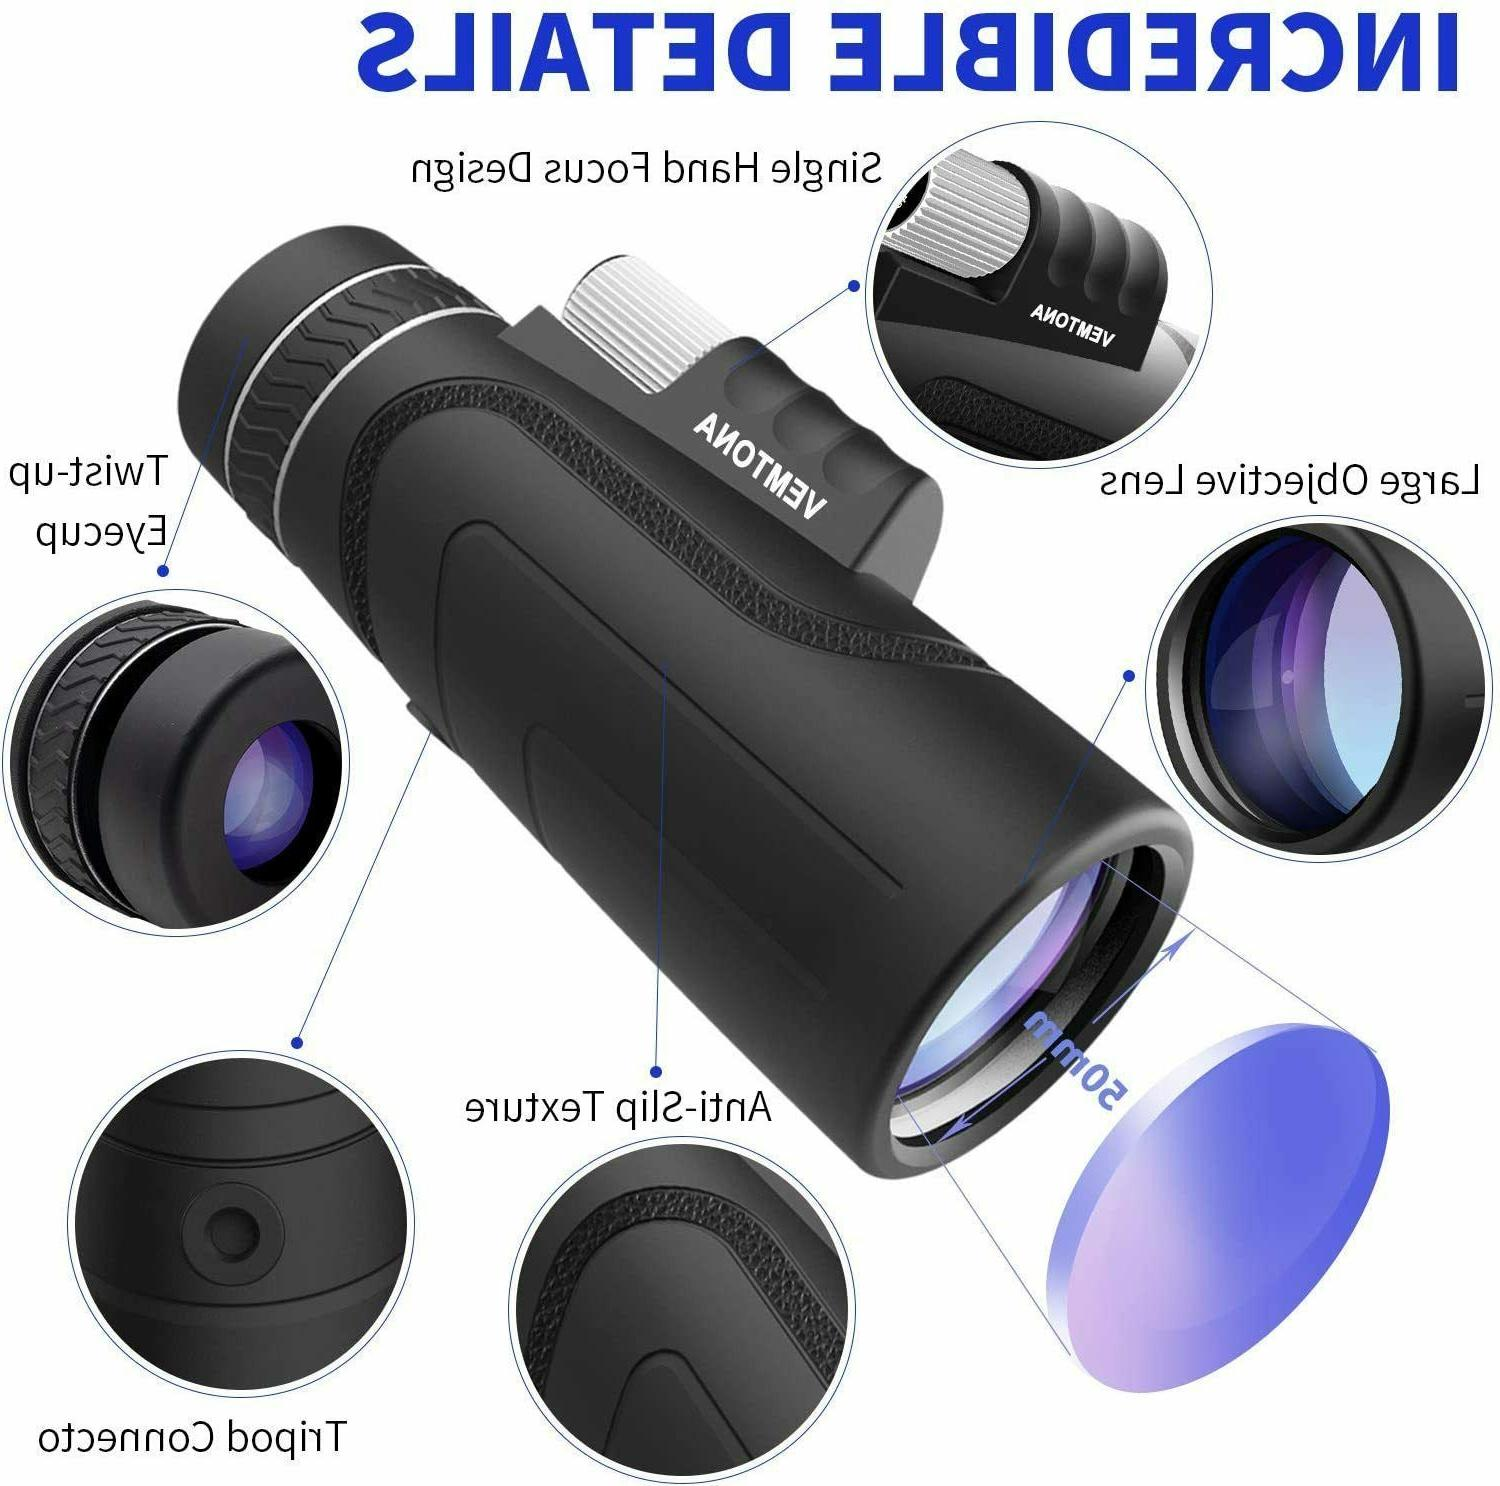 monocular hd telescopes 10x42 waterproof retractable camping